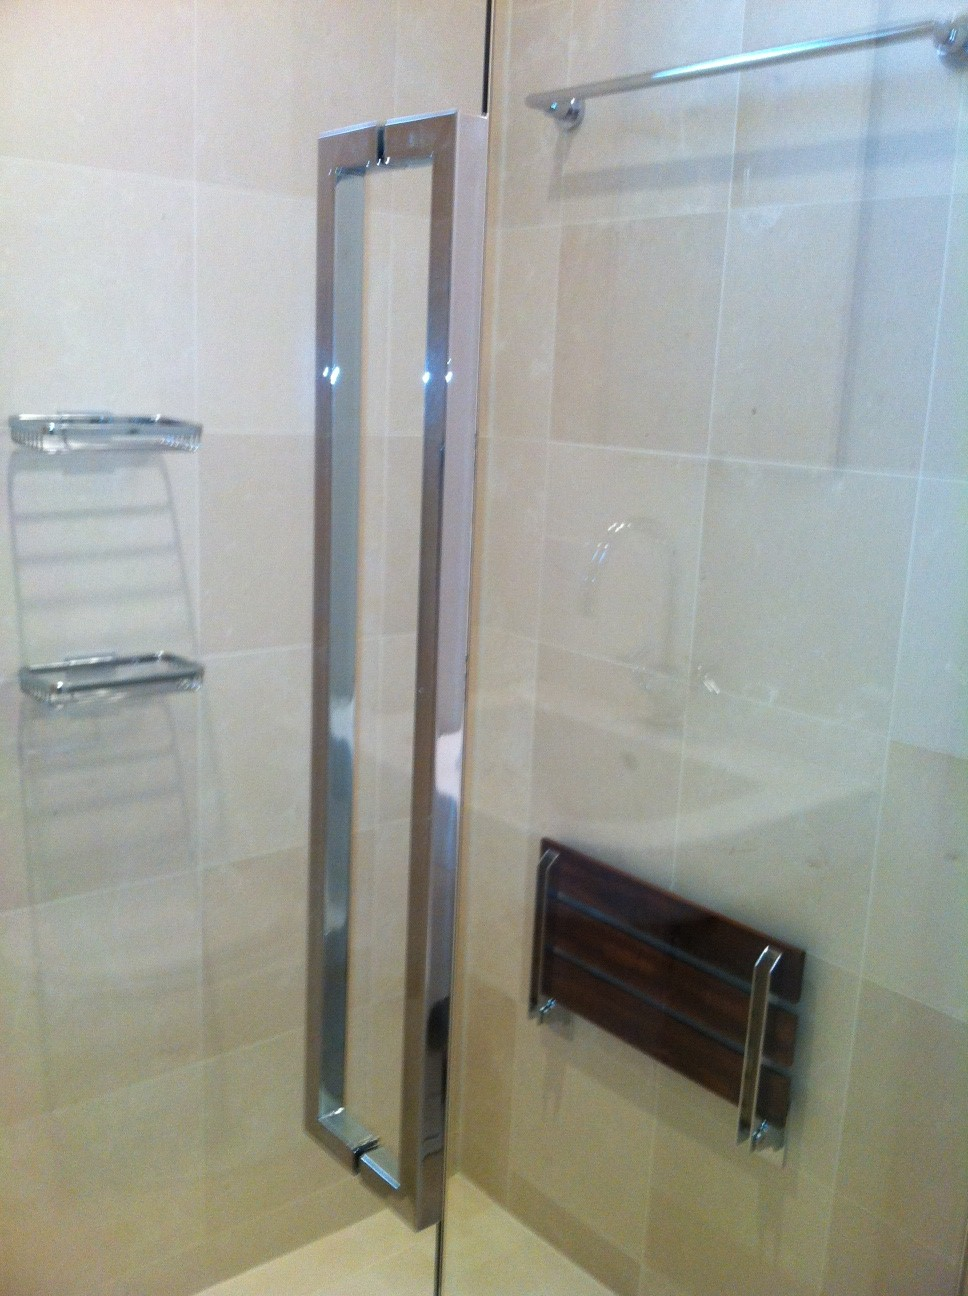 38u2033 shower door with crl hardware and a modern back to back 24u2033 square tubular pull